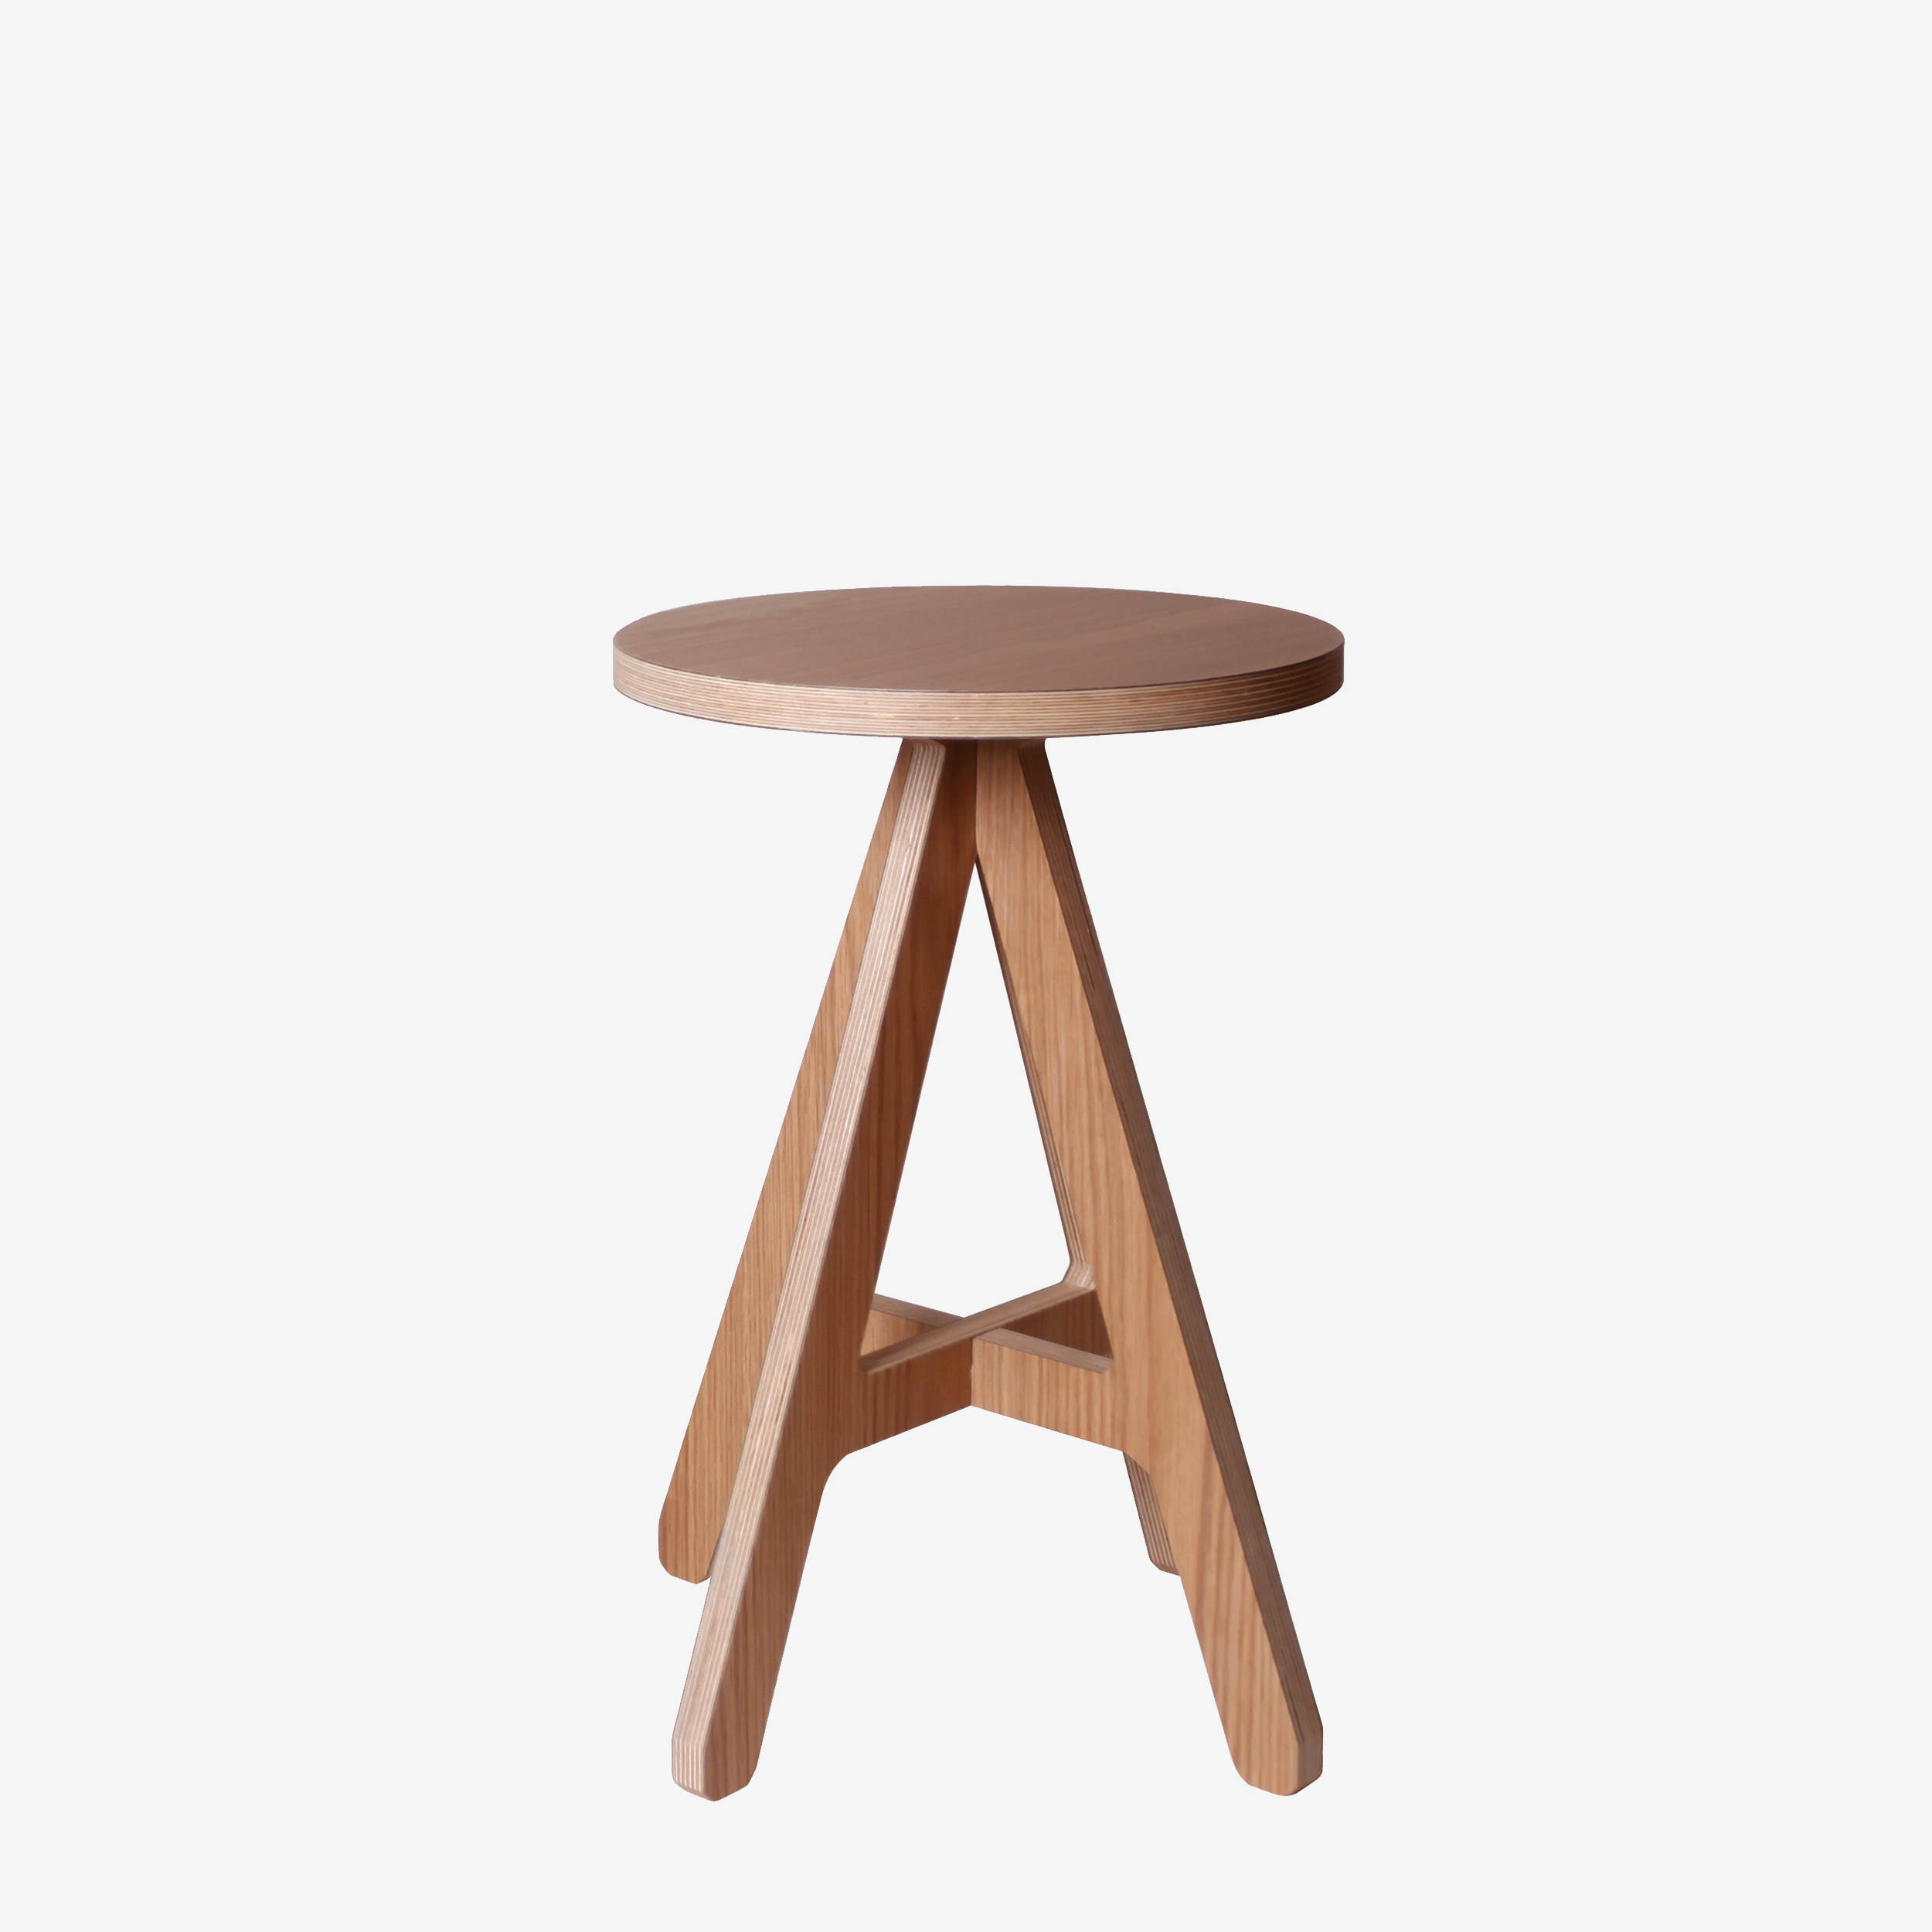 modern wood stool a stool british design byalex. Black Bedroom Furniture Sets. Home Design Ideas